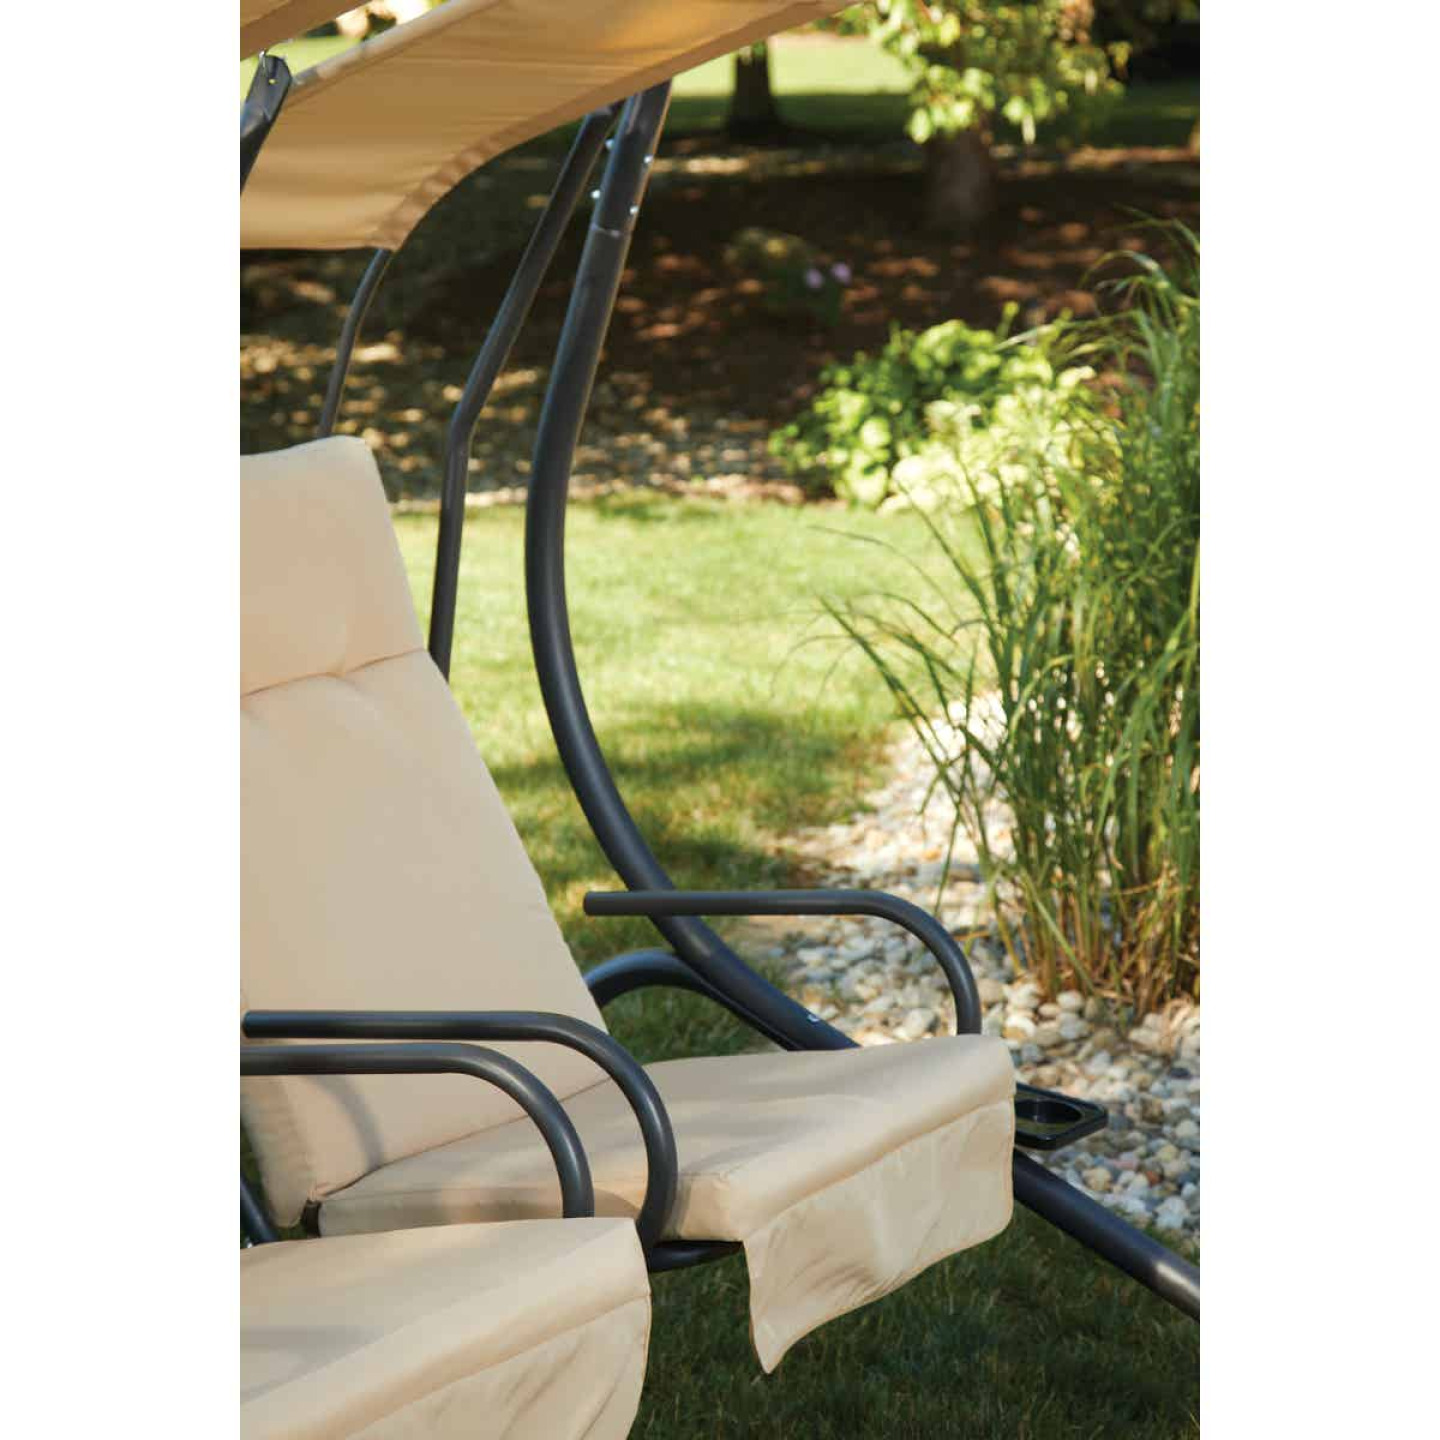 Outdoor Expressions 2-Person 67 In. W. x 67 In. H. x 53.5 In. D. Tan Patio Swing Image 4